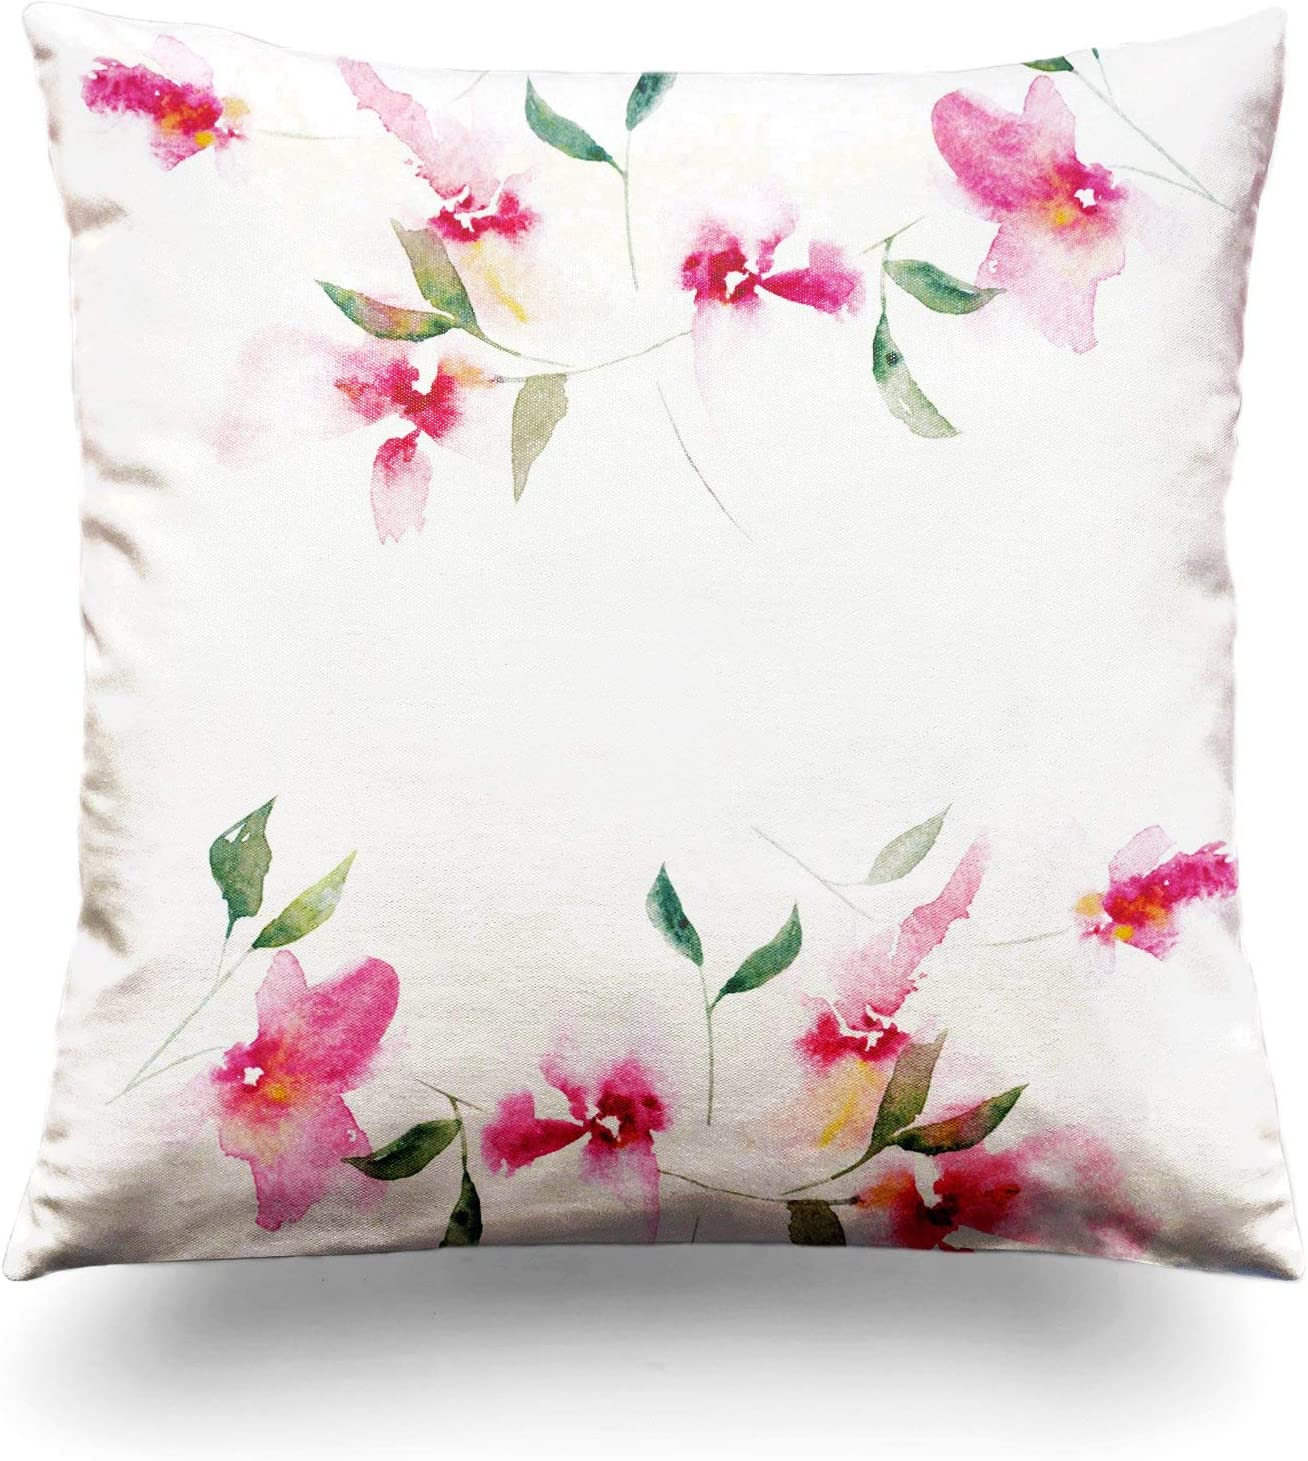 Assp Throw Pillow Cover Banner Floral Background Watercolor Bouquet Birthday Card Beauty Blossom Bud 18x18 Inches Home Decorative Square Pillow Case Cushion Cover Home Kitchen